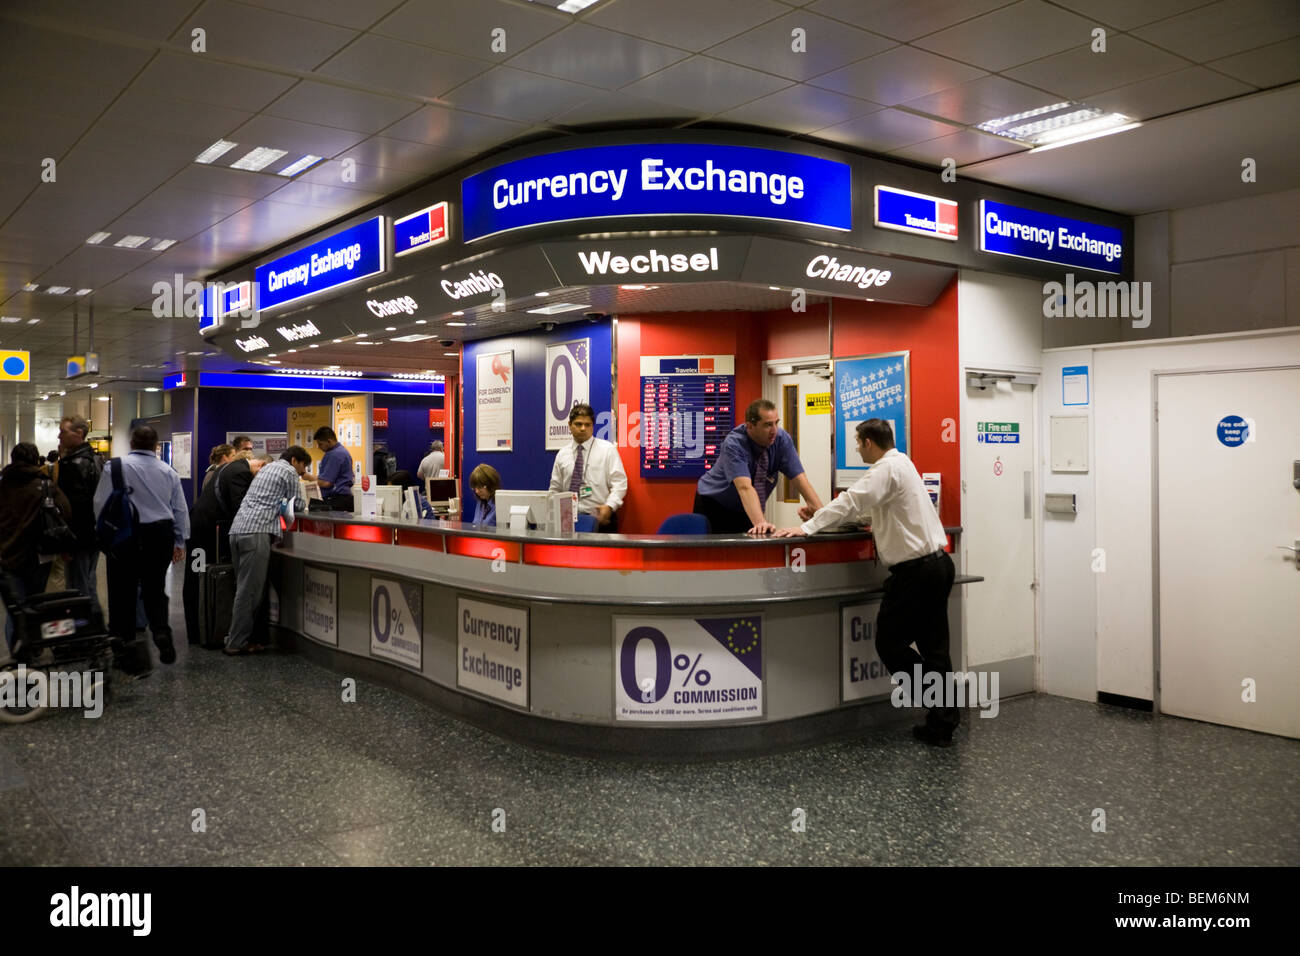 Bureau de change office operated by travelex at gatwick airport south stock photo royalty free - Gatwick airport bureau de change ...